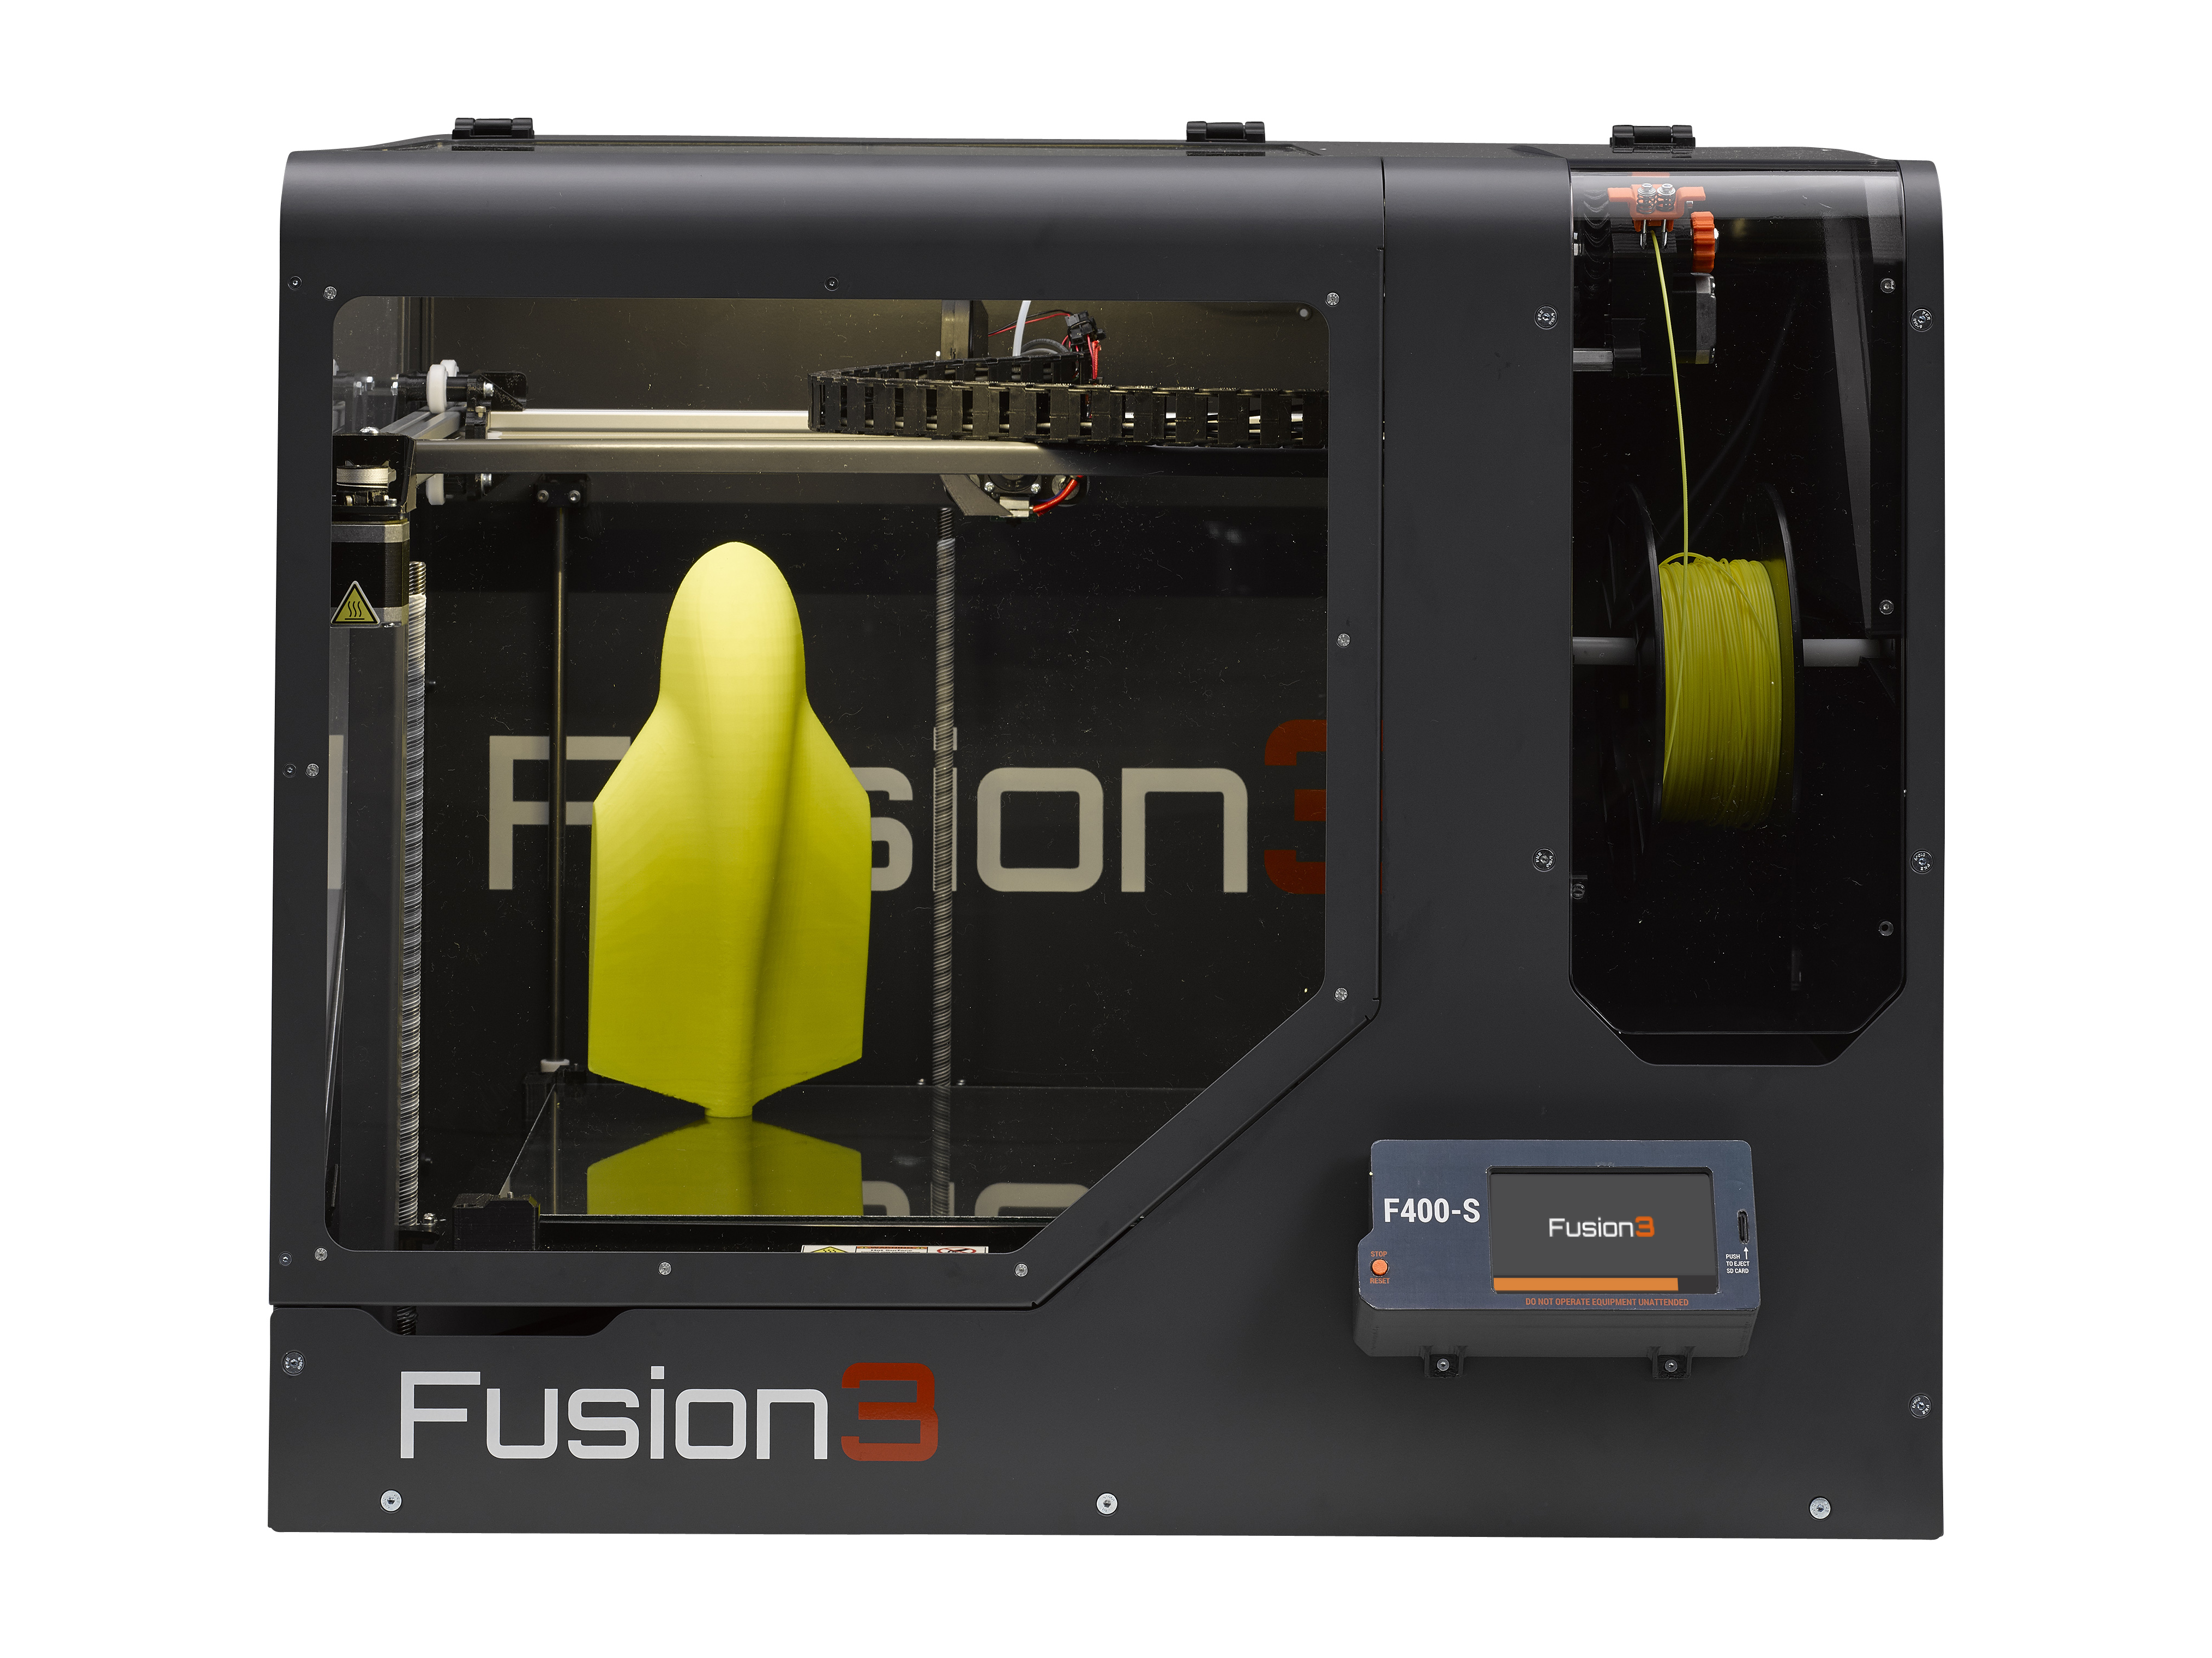 Fusion3 F400-S (front)